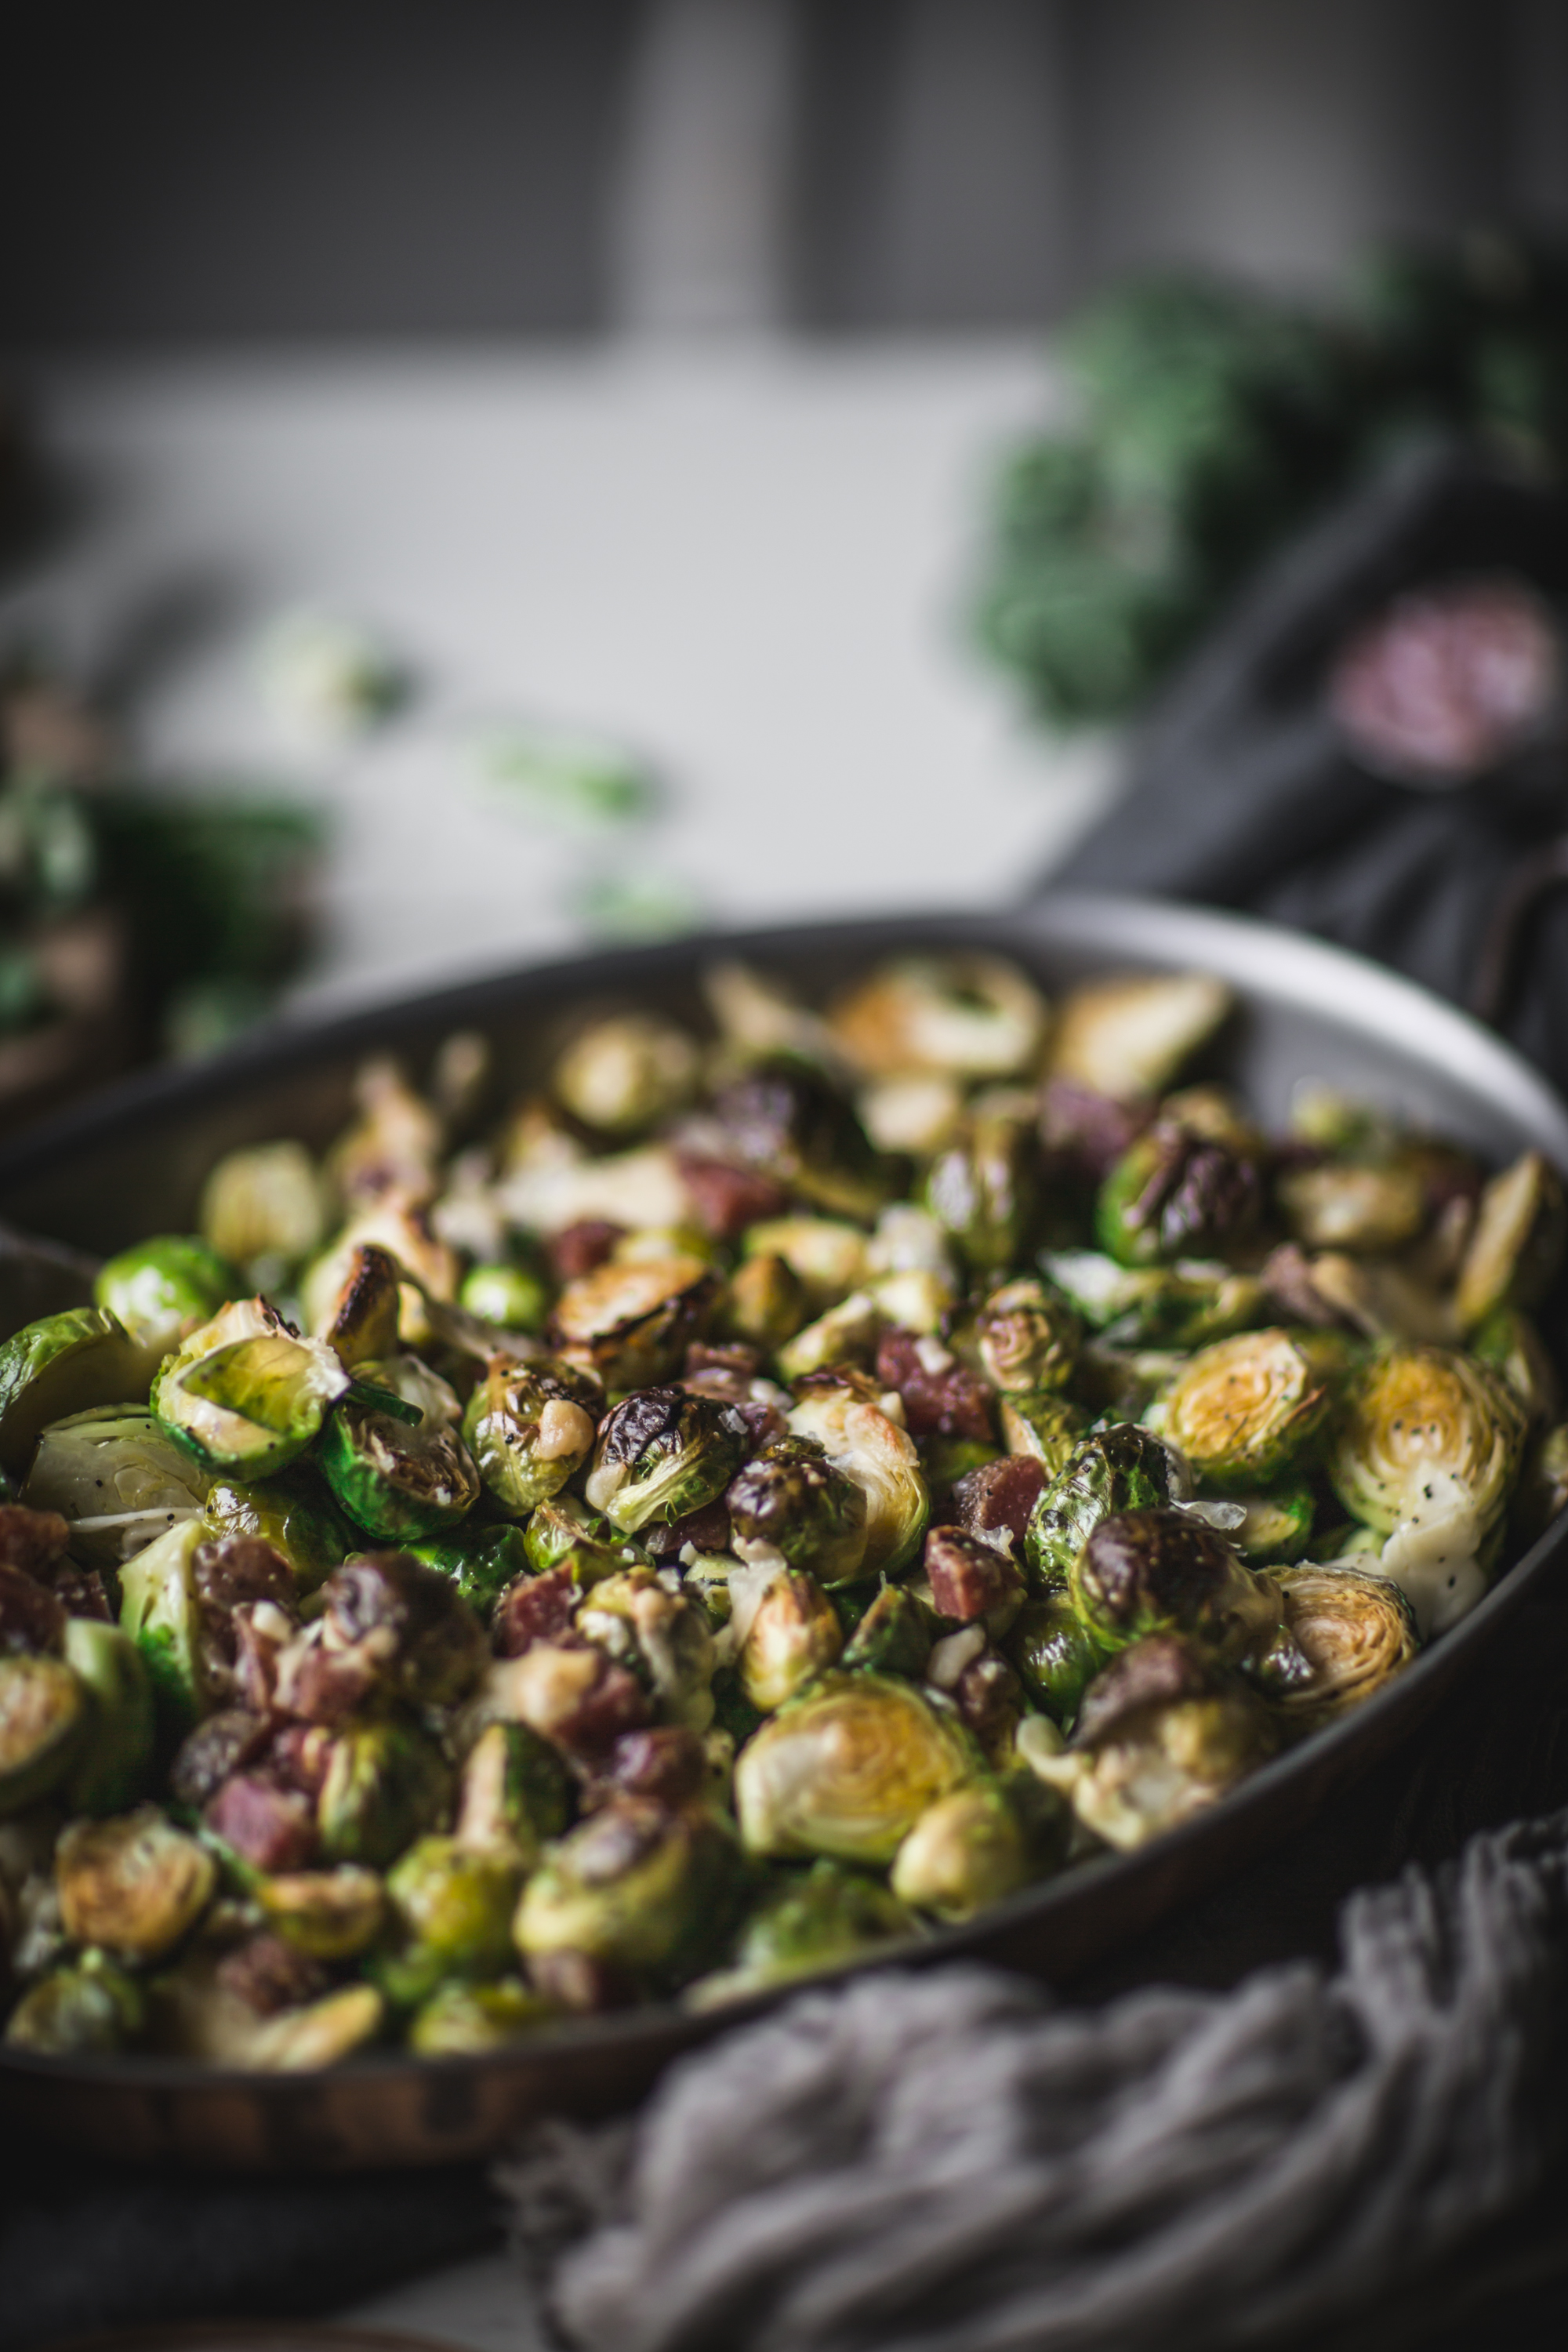 How to Make Roasted Brussel Sprouts by Eva Kosmas Flores